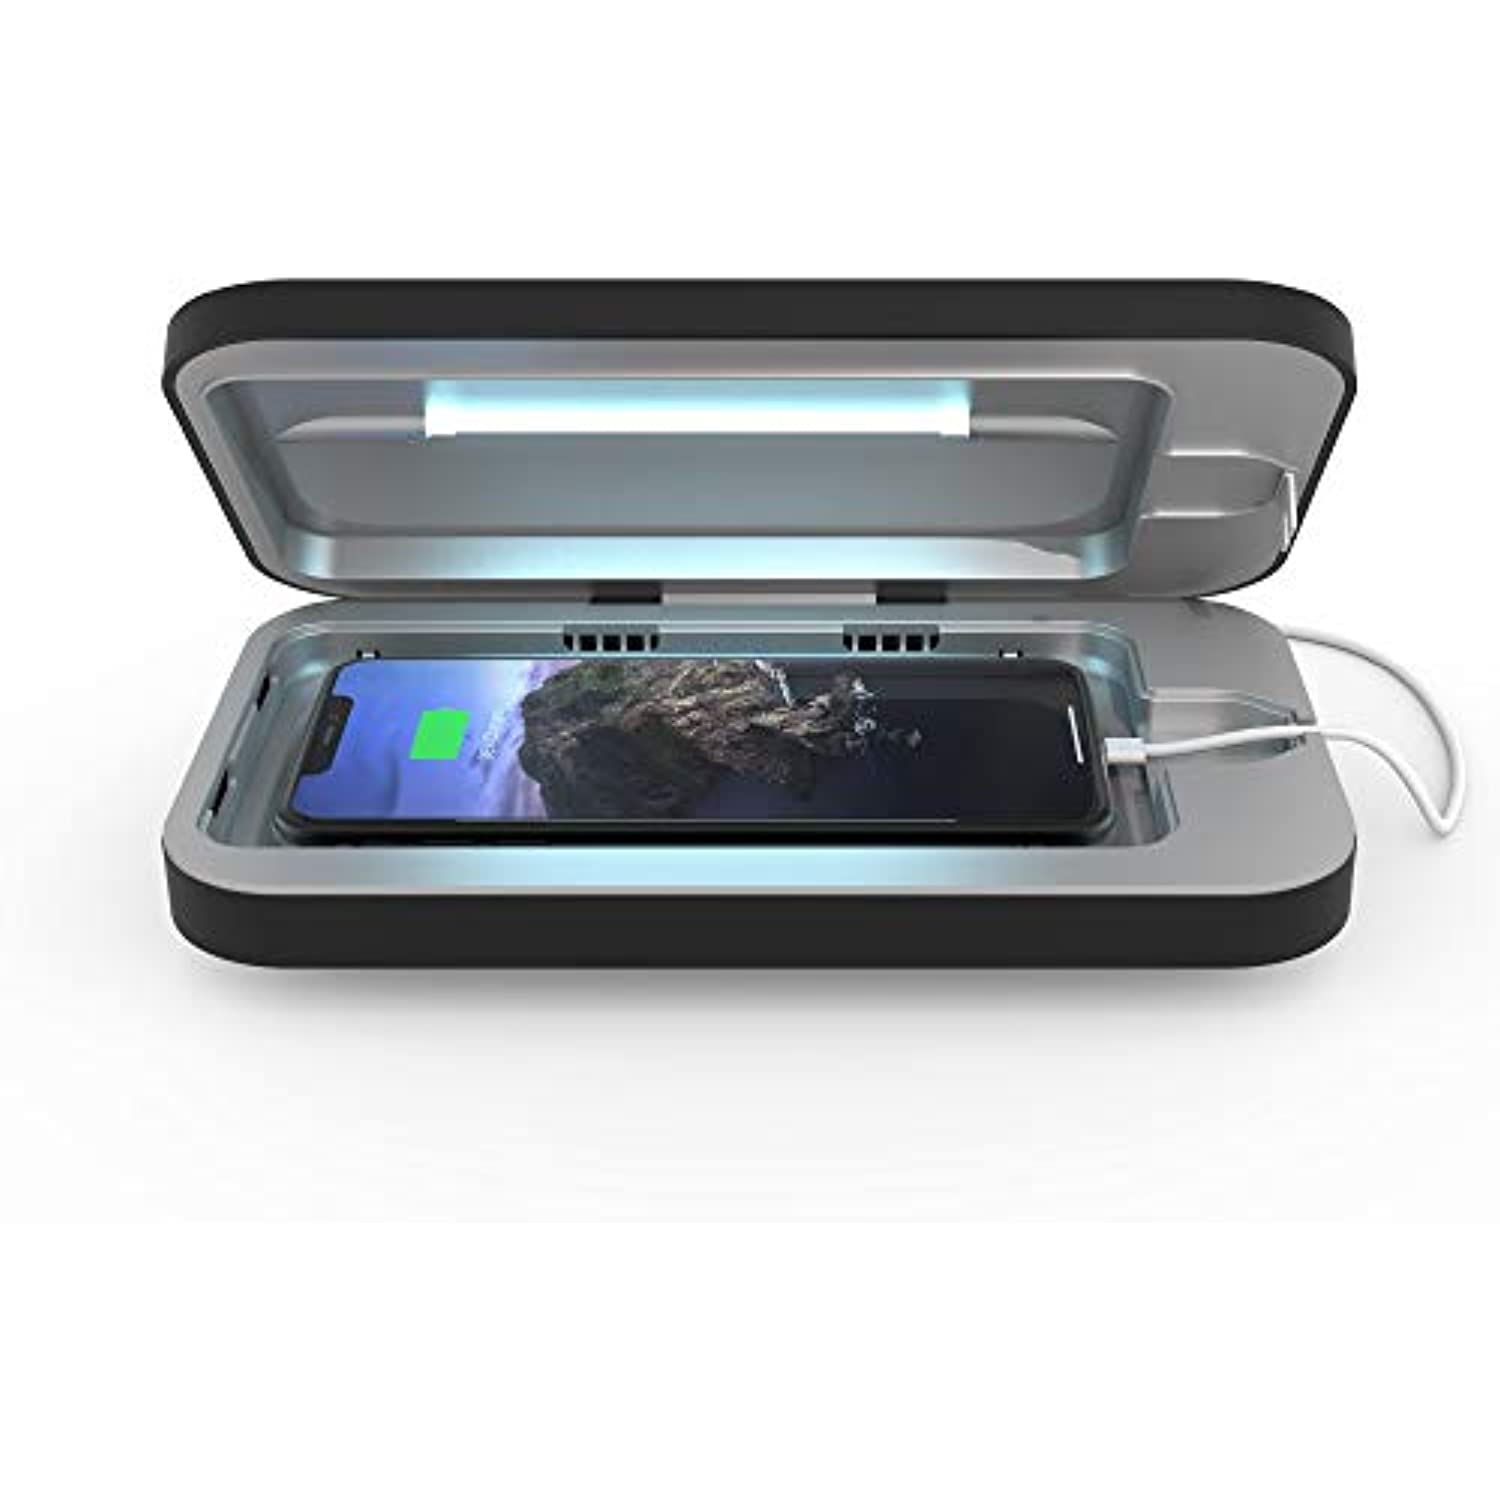 PhoneSoap 3 UV Cell Phone Sanitizer and Dual Universal Cell Phone Charger   Patented and Clinically Proven 360 Degree UV Light Sanitizer   Cleans and Charges All Phones (Black)